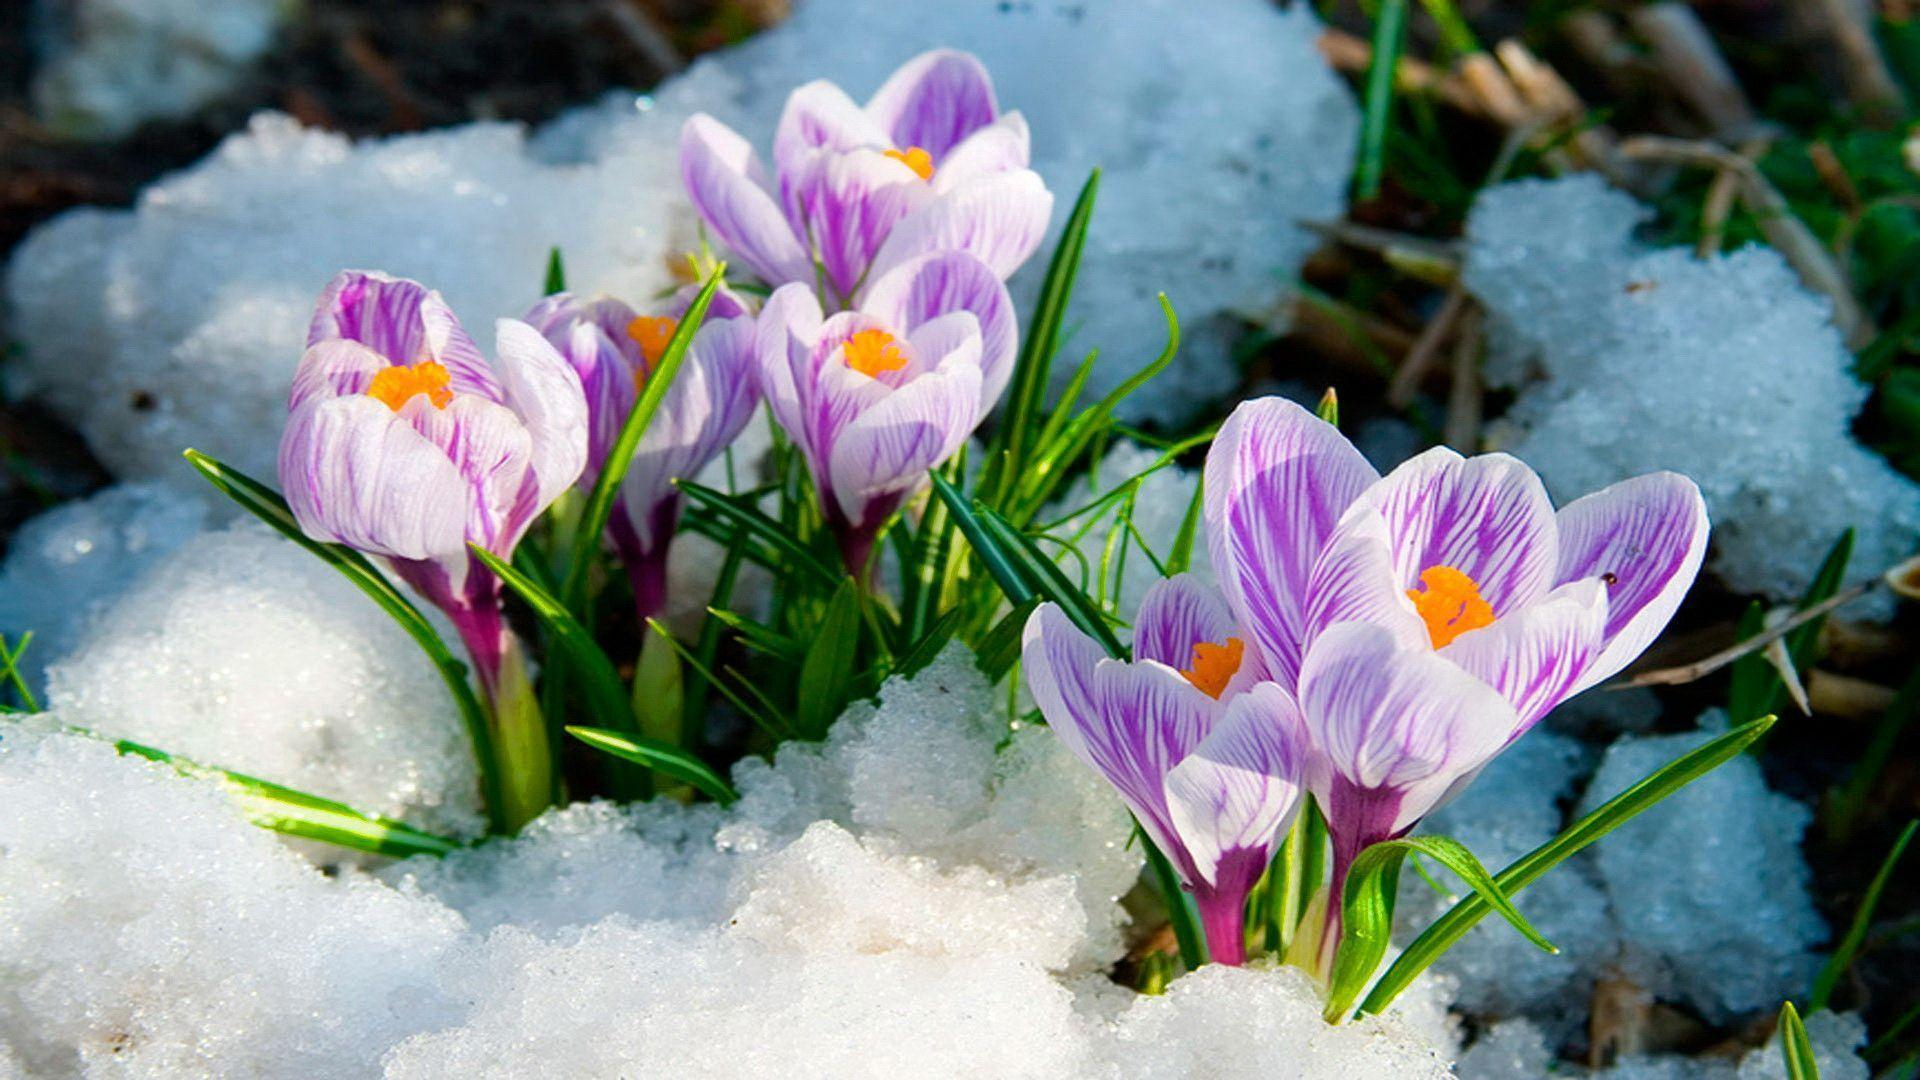 Wallpapers spring flowers wallpaper cave - Backgrounds springtime ...